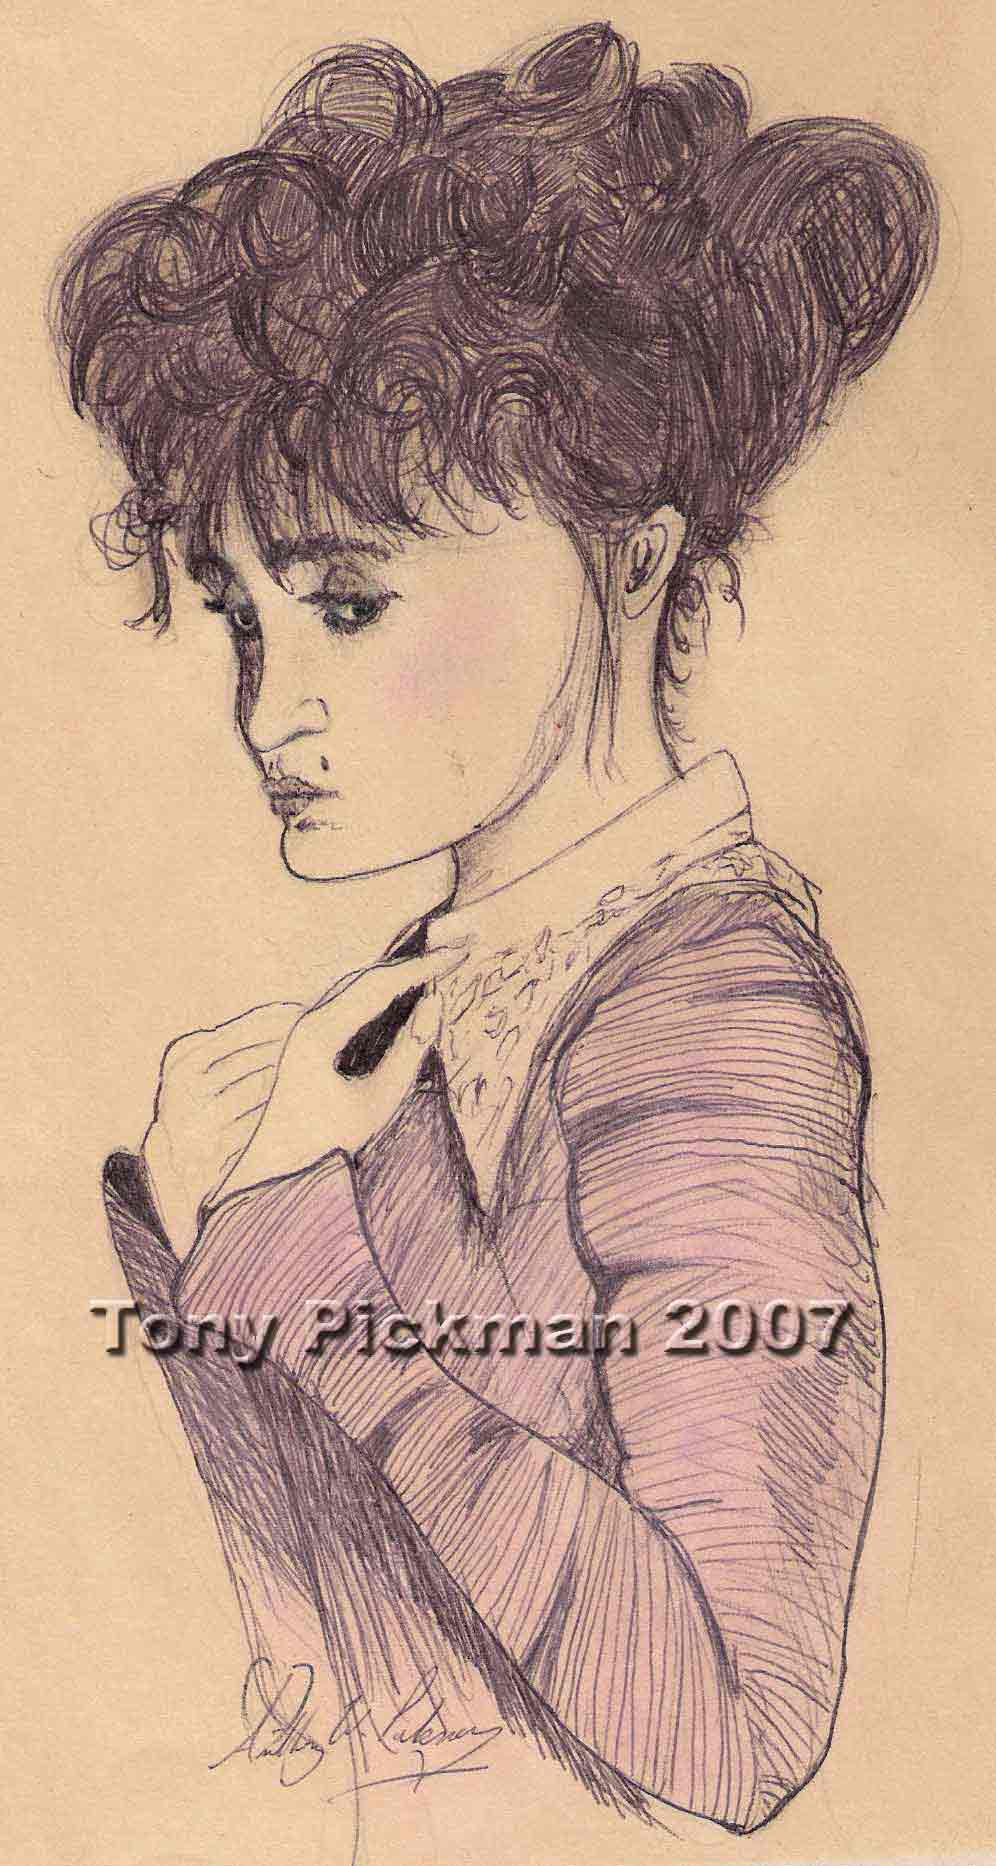 A sketch by Tony Pickman of a Victorian-looking woman that appeared near his bed to threaten him